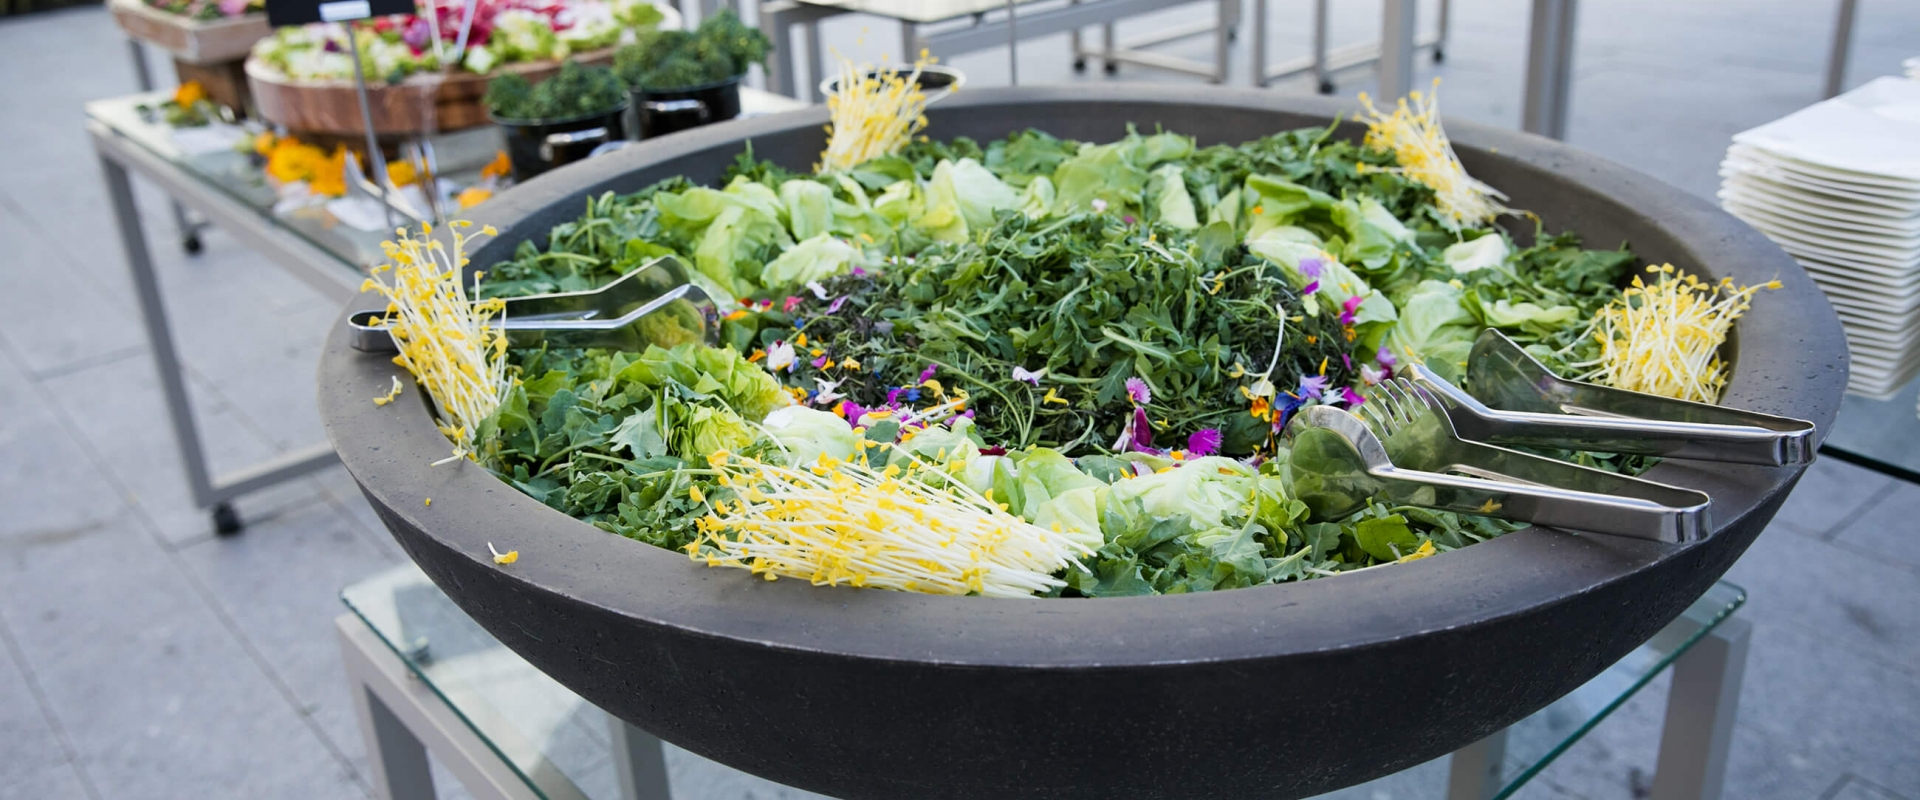 Giant bowl of beautiful green salad made with fresh ingredients